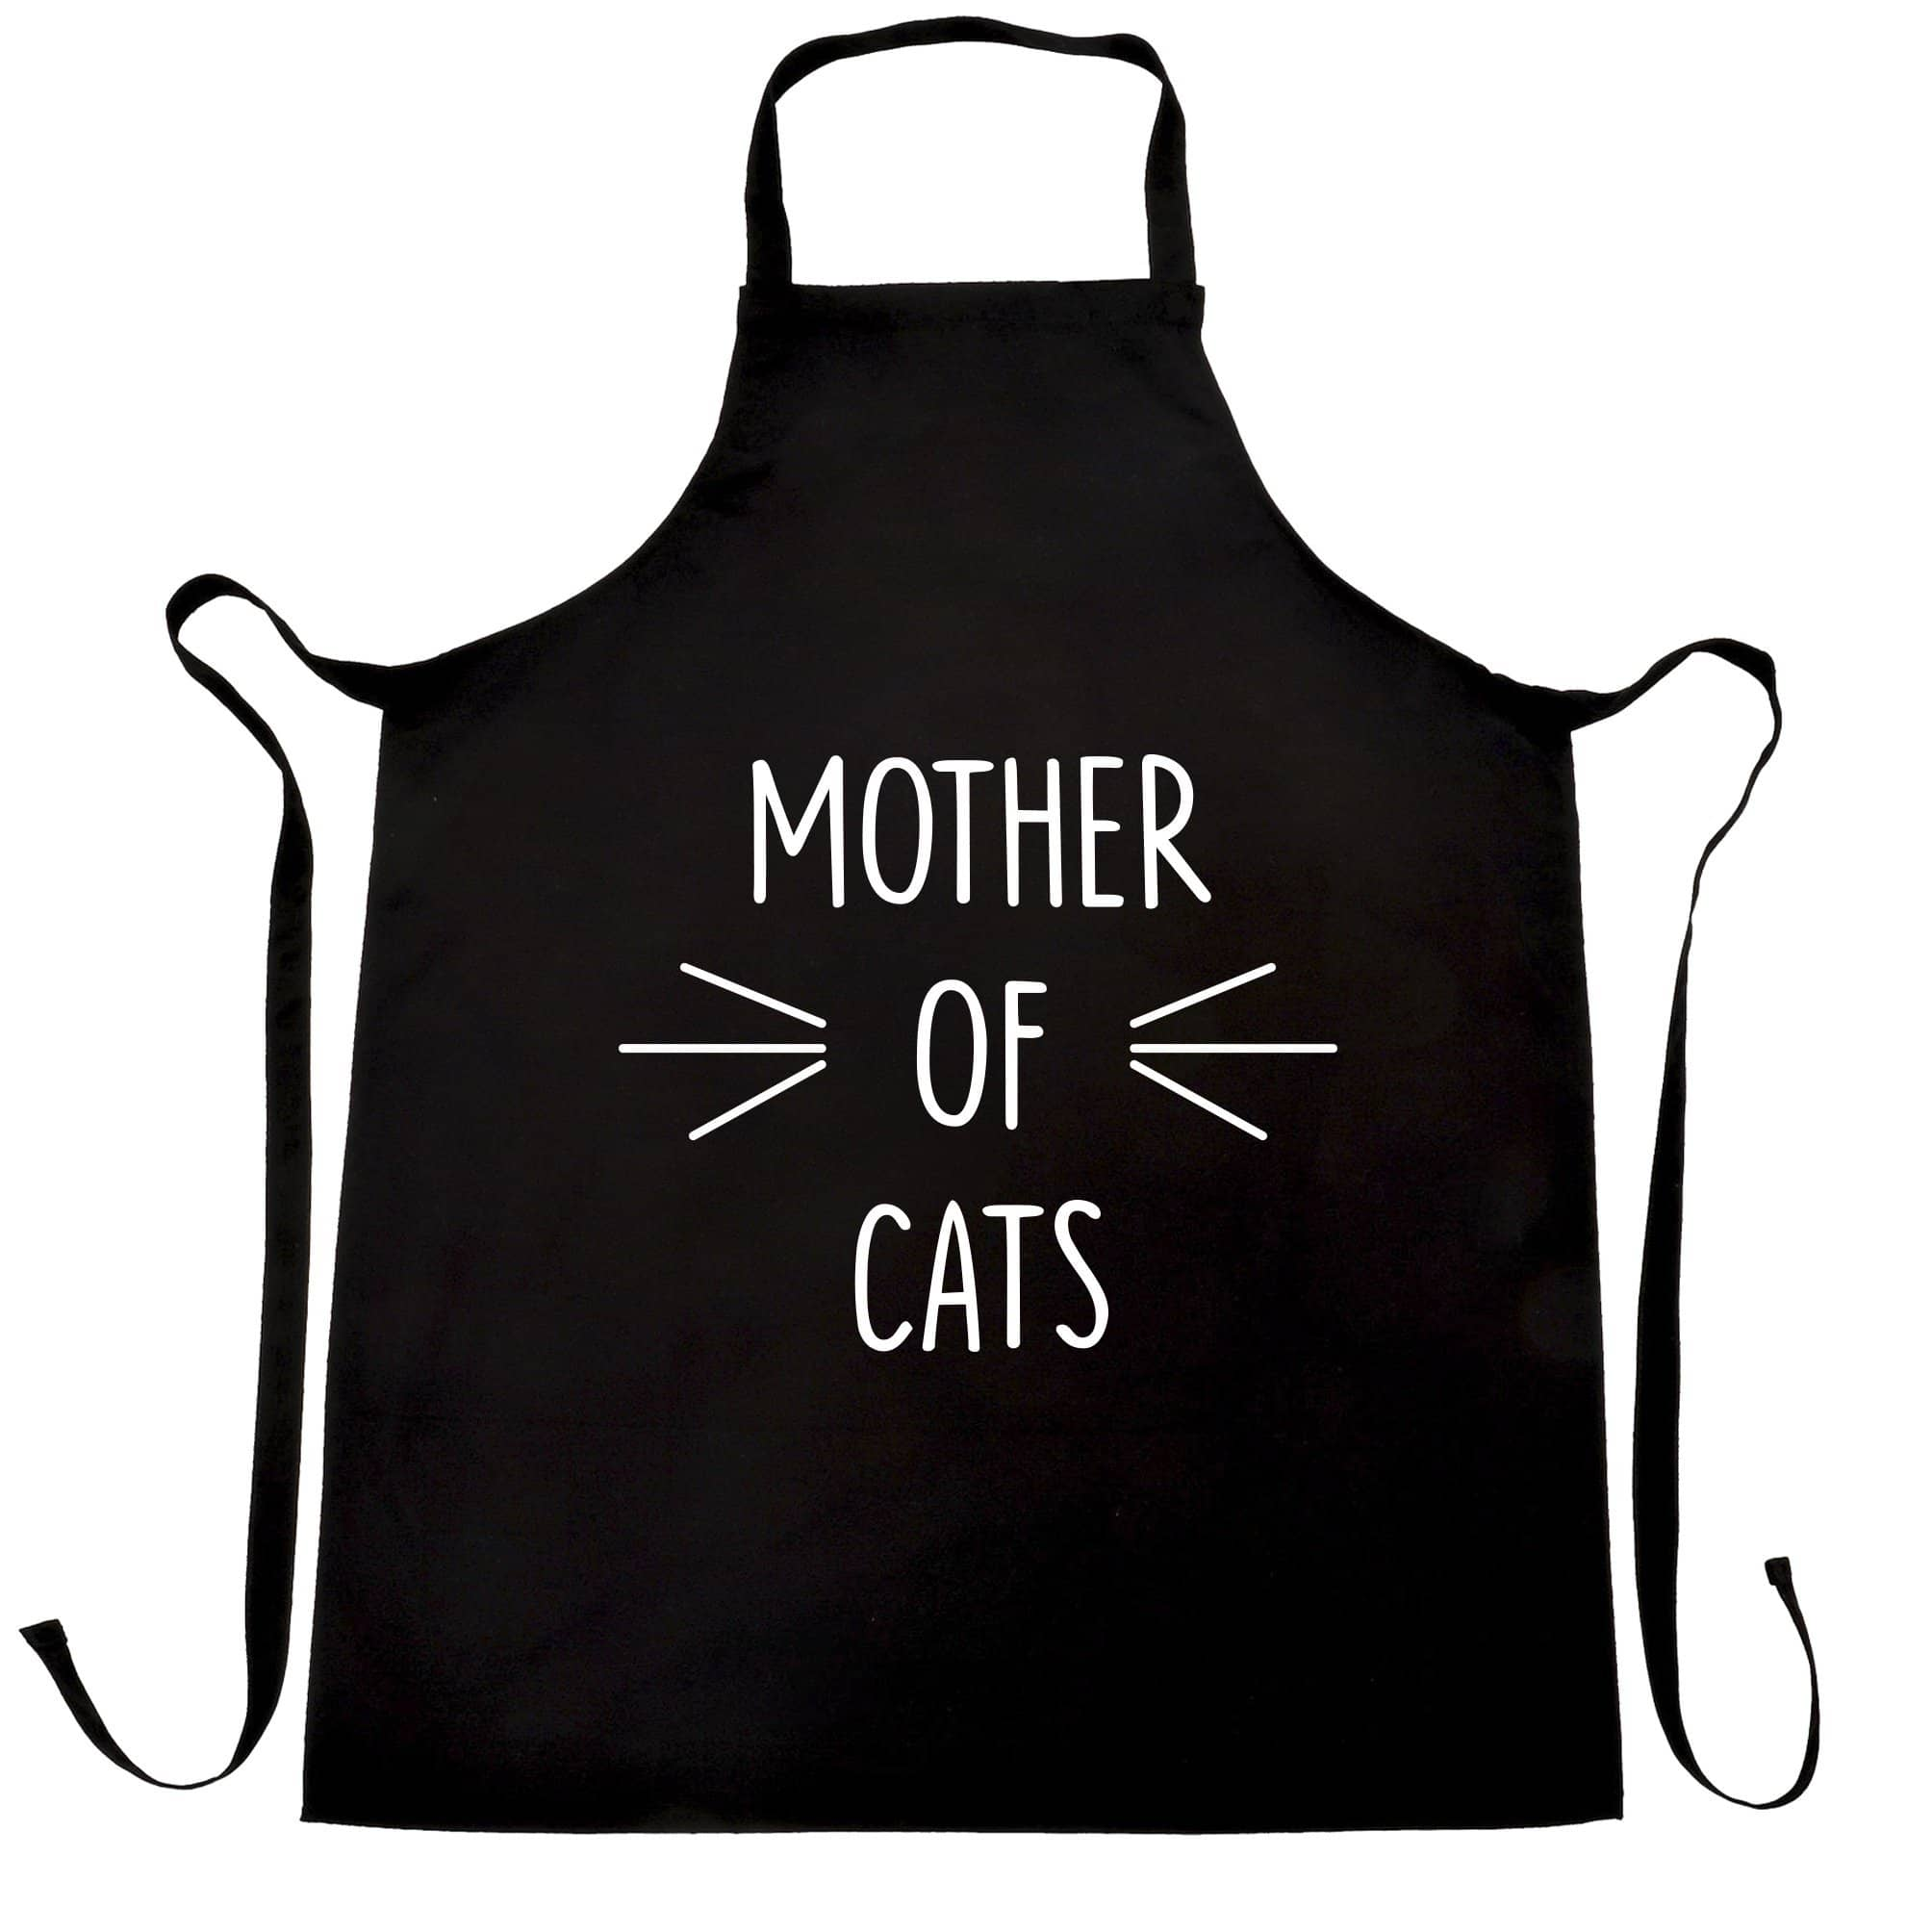 Novelty Pet Chef's Apron Mother Of Cats Slogan